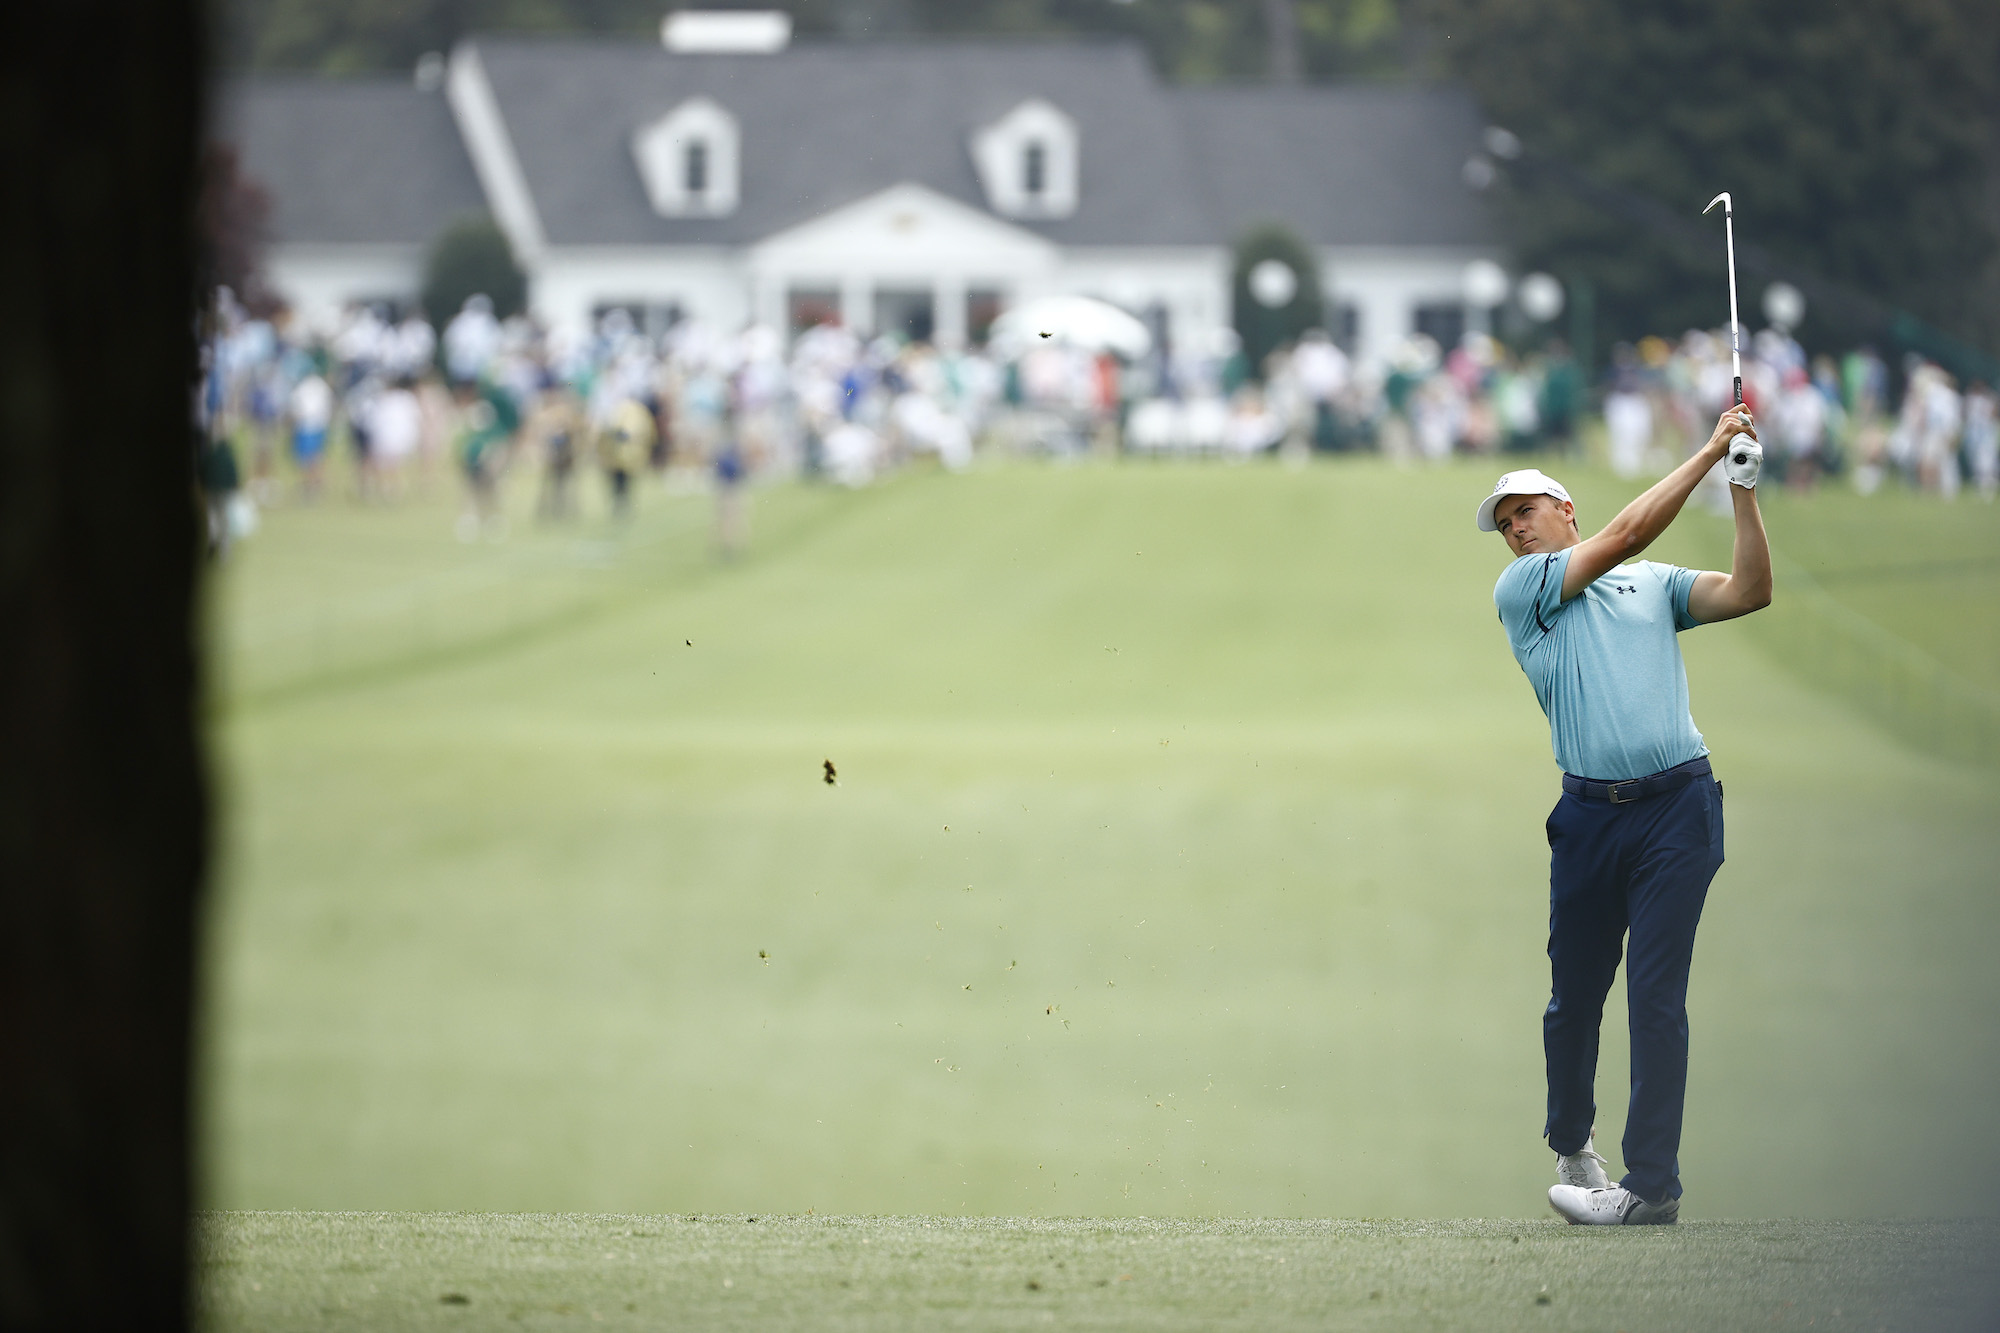 2021 Masters Tournament: Round 2 - Second Shot on the Opening Hole